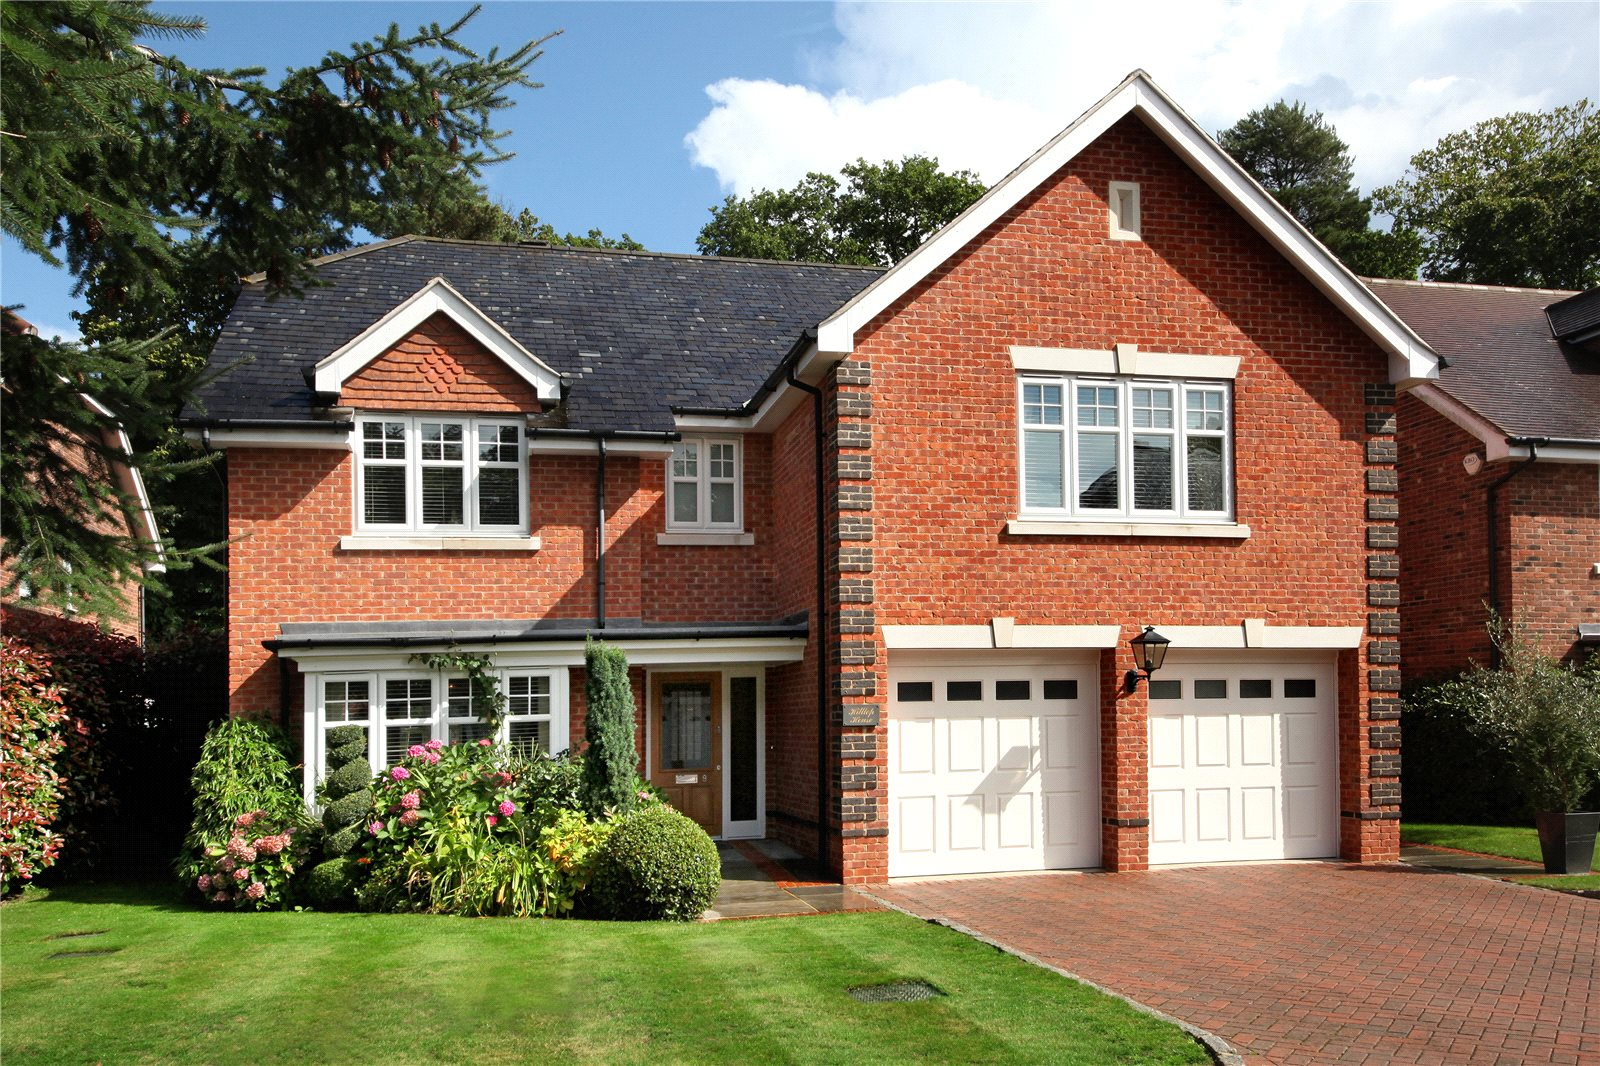 Single Family Home for Sale at Chapel Pines, Camberley, Surrey, GU15 Camberley, England